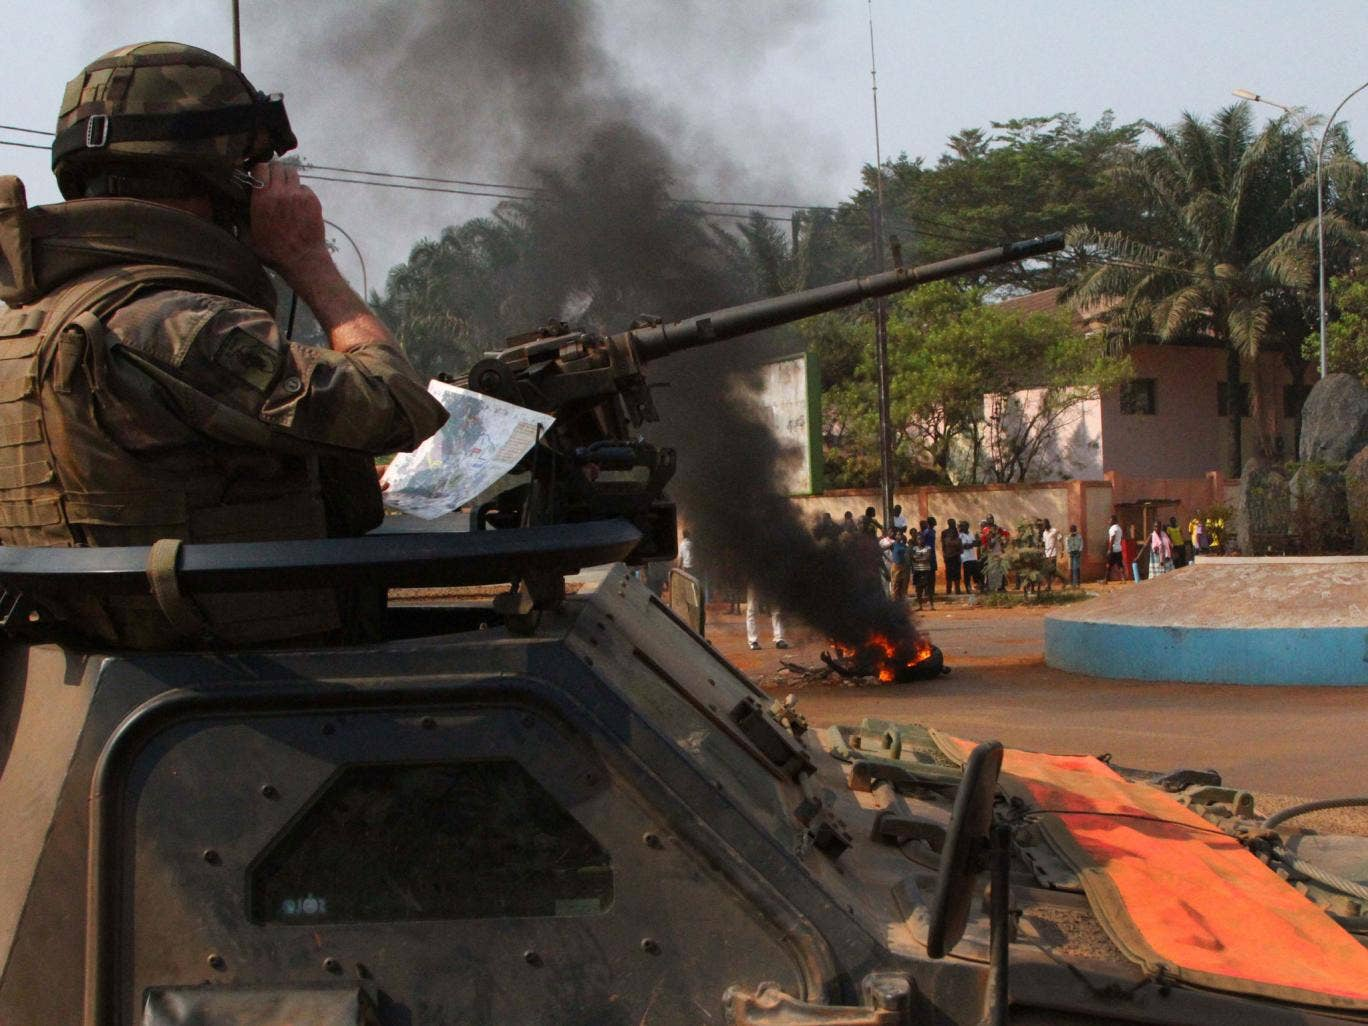 A French soldier looks on as the body of a lynched Muslim man is burned by a crowd, in Bangui; the EU has decided to send out troops to help stabilise the country